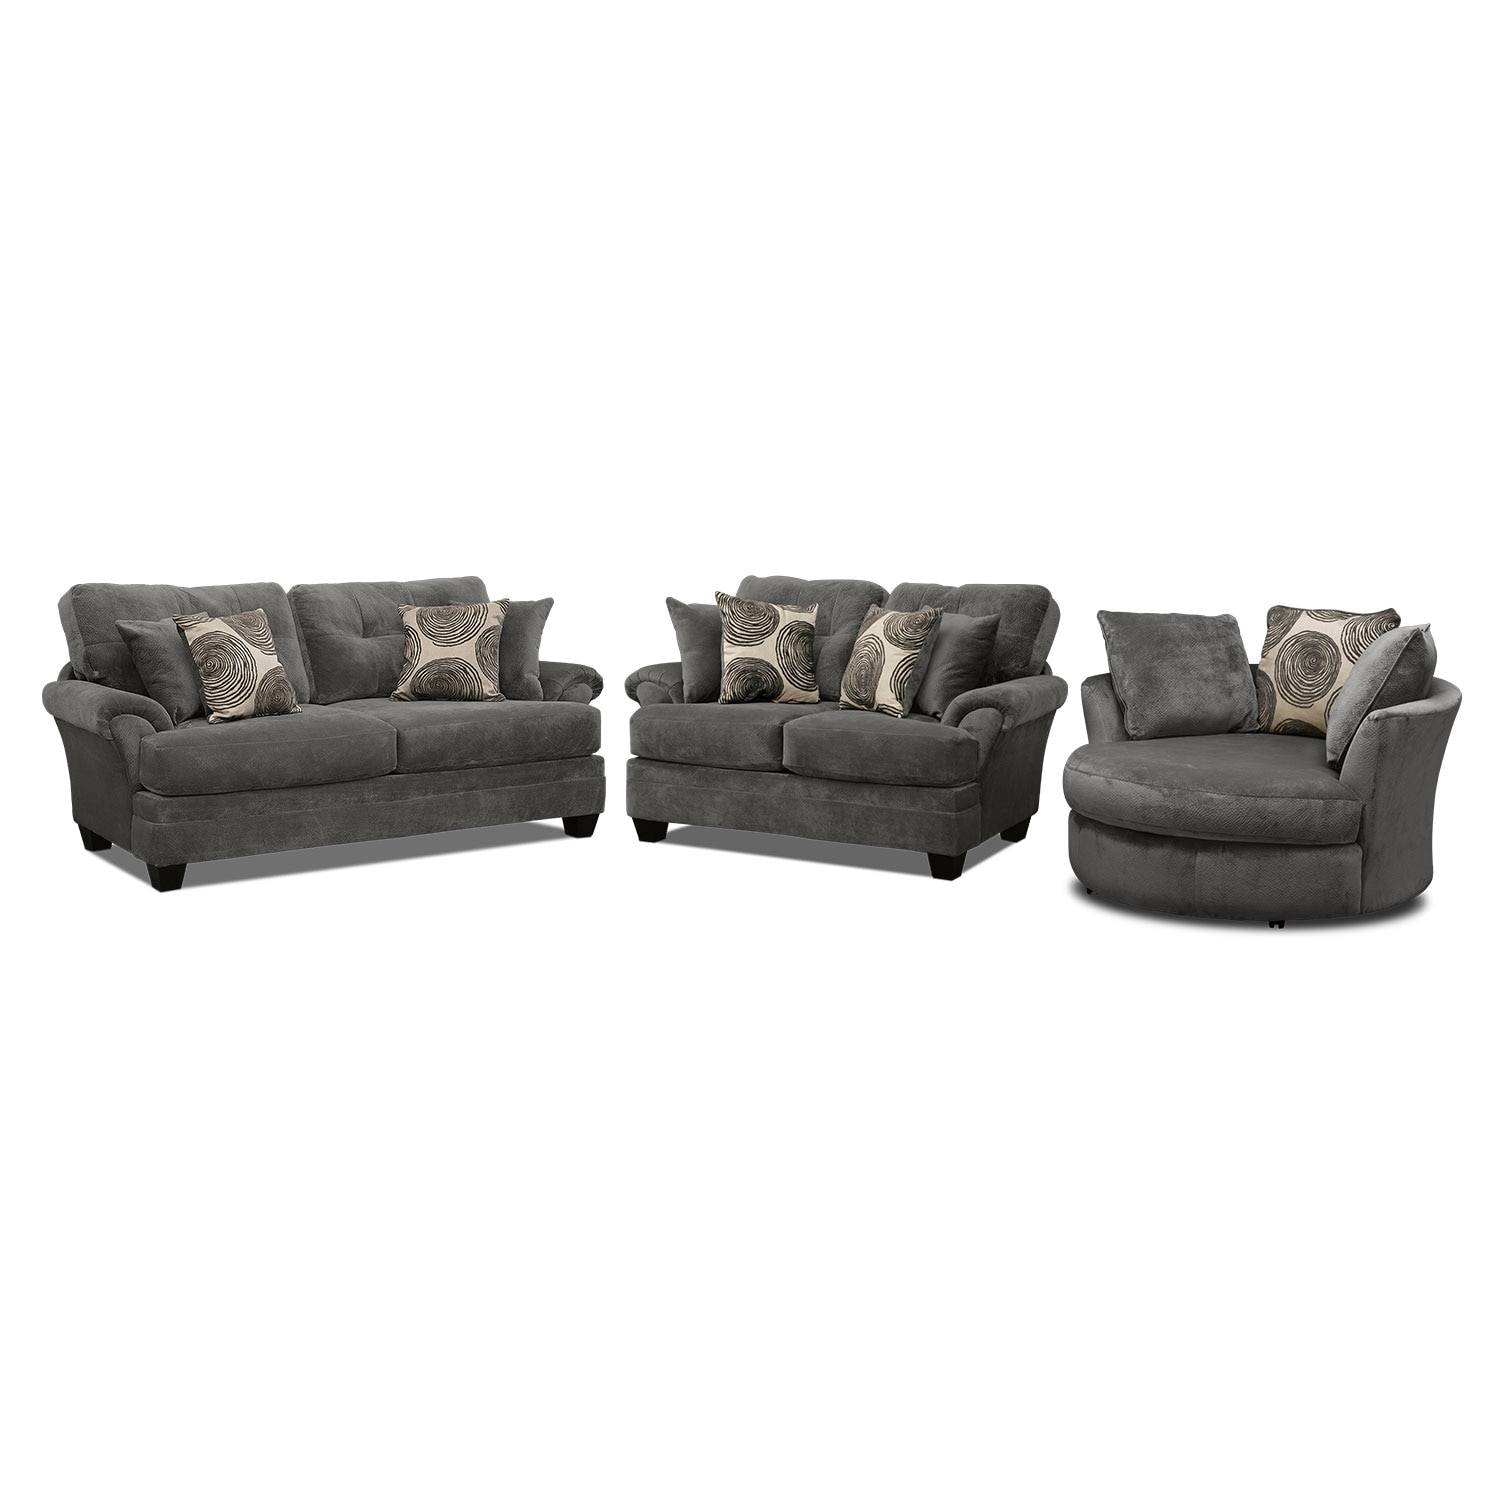 Cordelle Sofa, Loveseat And Swivel Chair Set – Gray | Value City For Swivel Sofa Chairs (View 4 of 30)